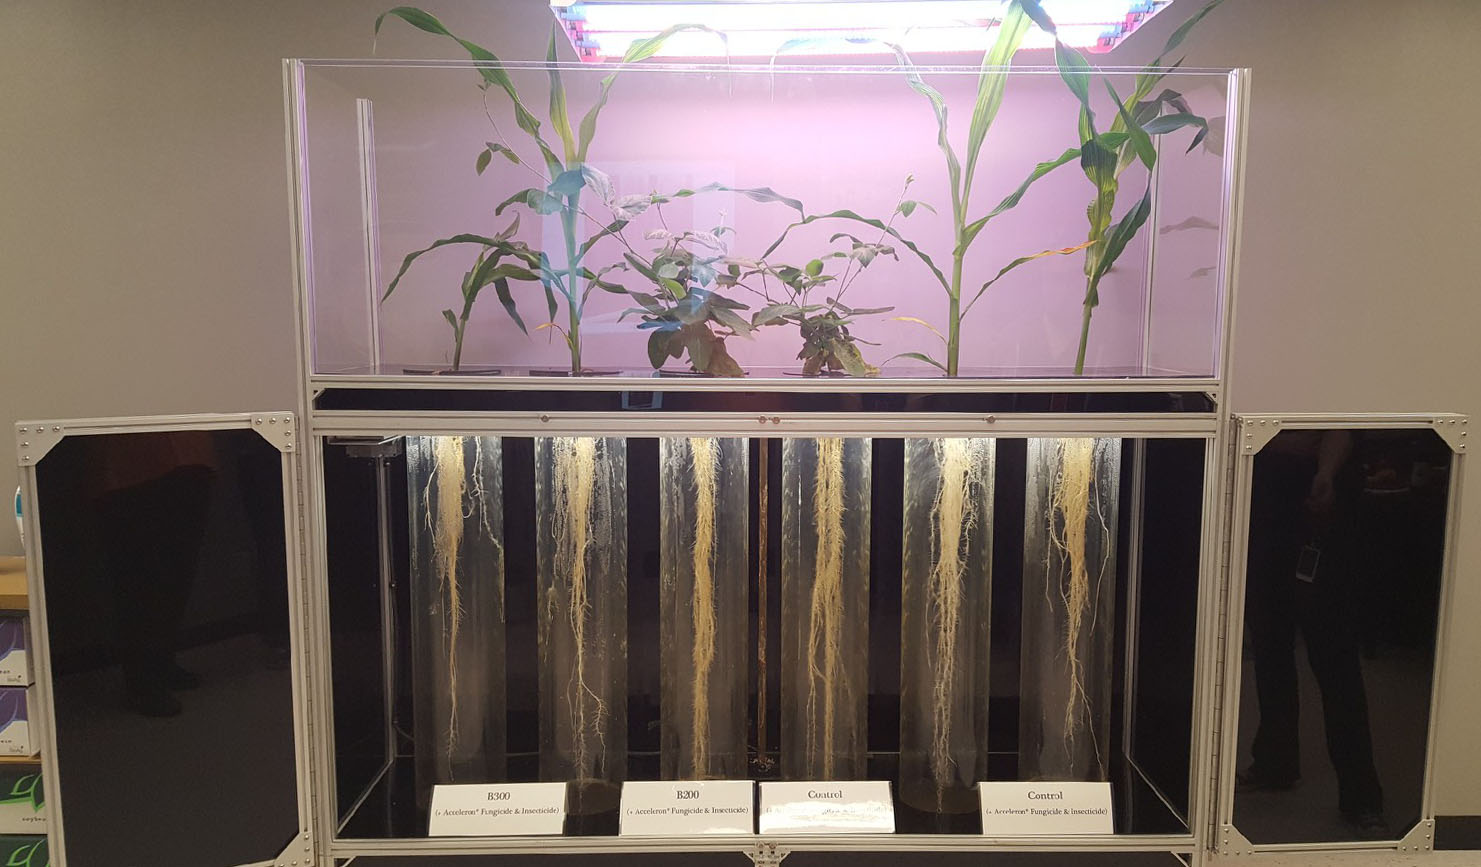 Plants at Monsanto used for testing different types of bug repellents.